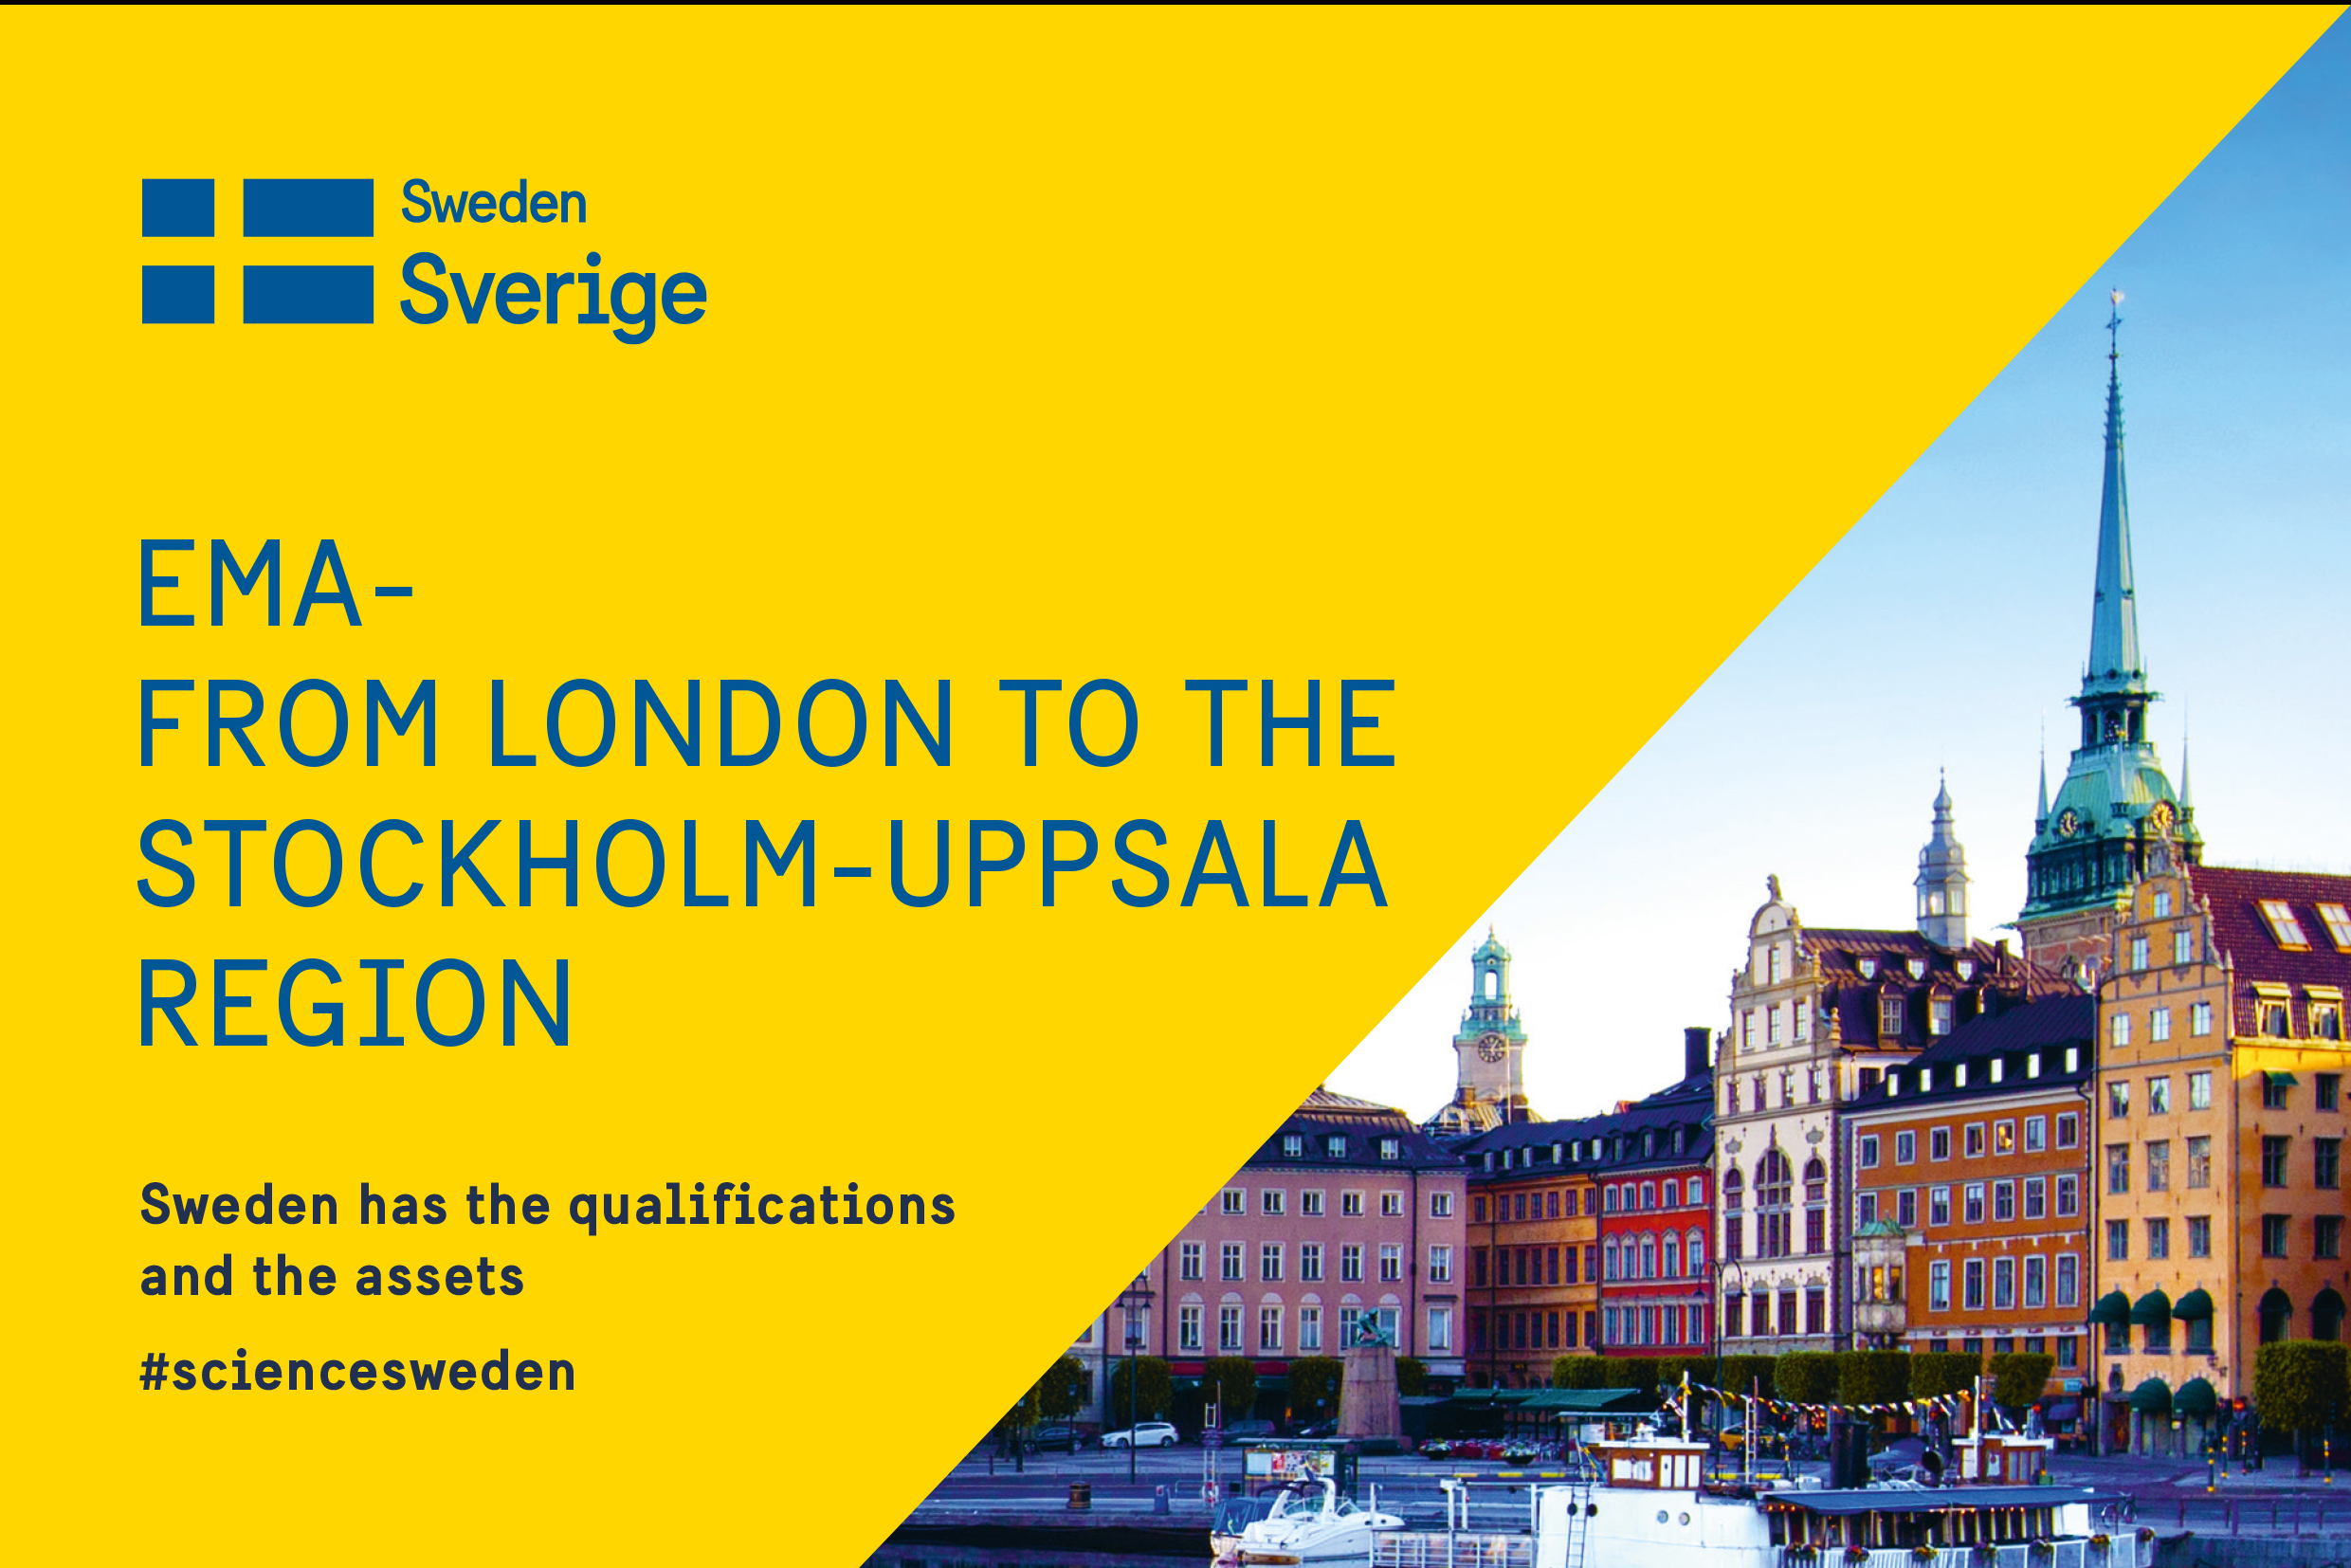 Search hundreds of travel sites at once for deals on flights to Stockholm